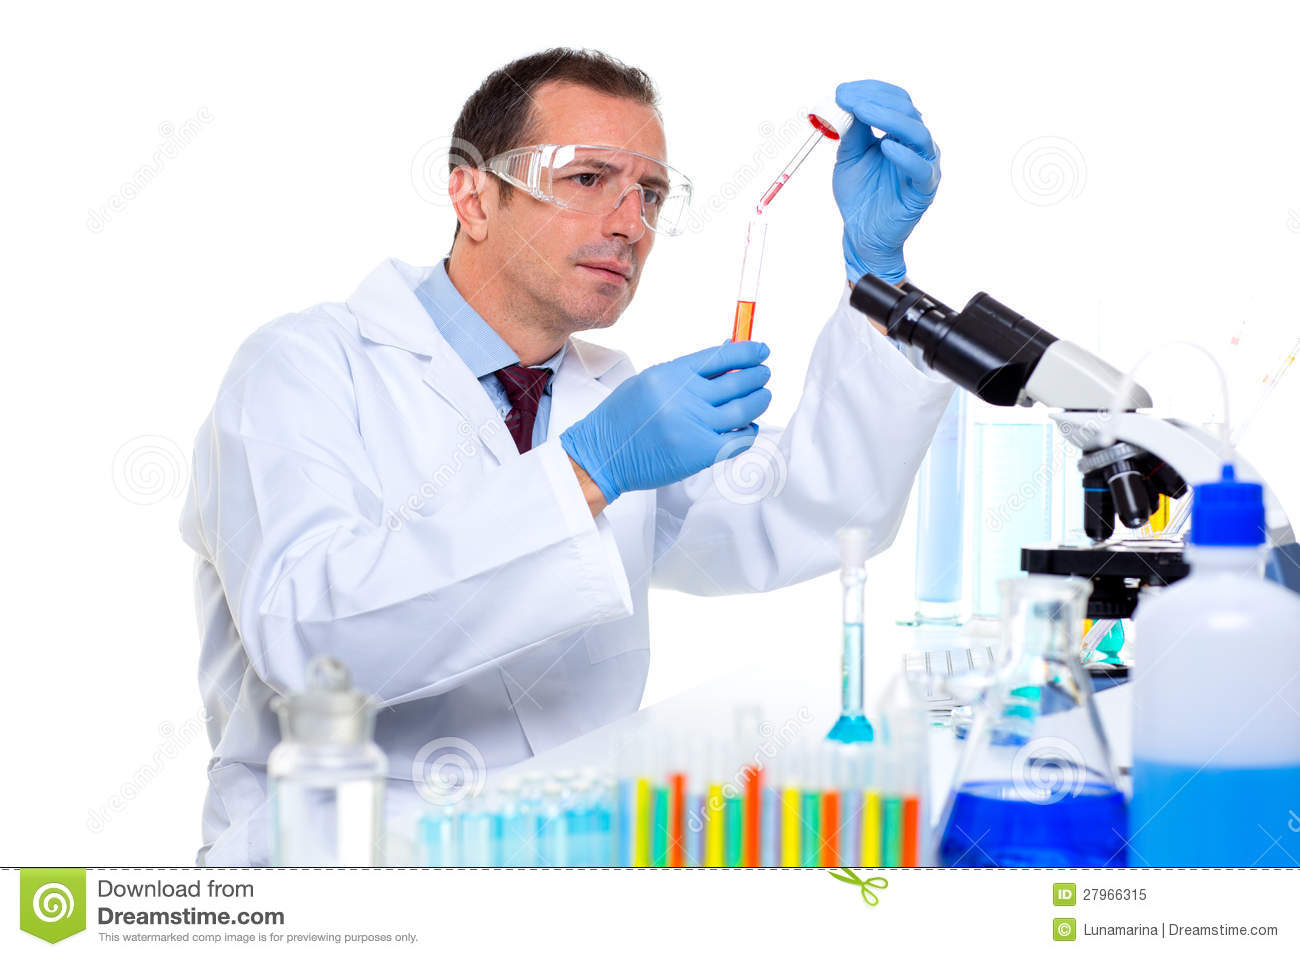 laboratory scientist working at lab with test tubes student writing clipart black and white Student Writing Clip Art Black and White